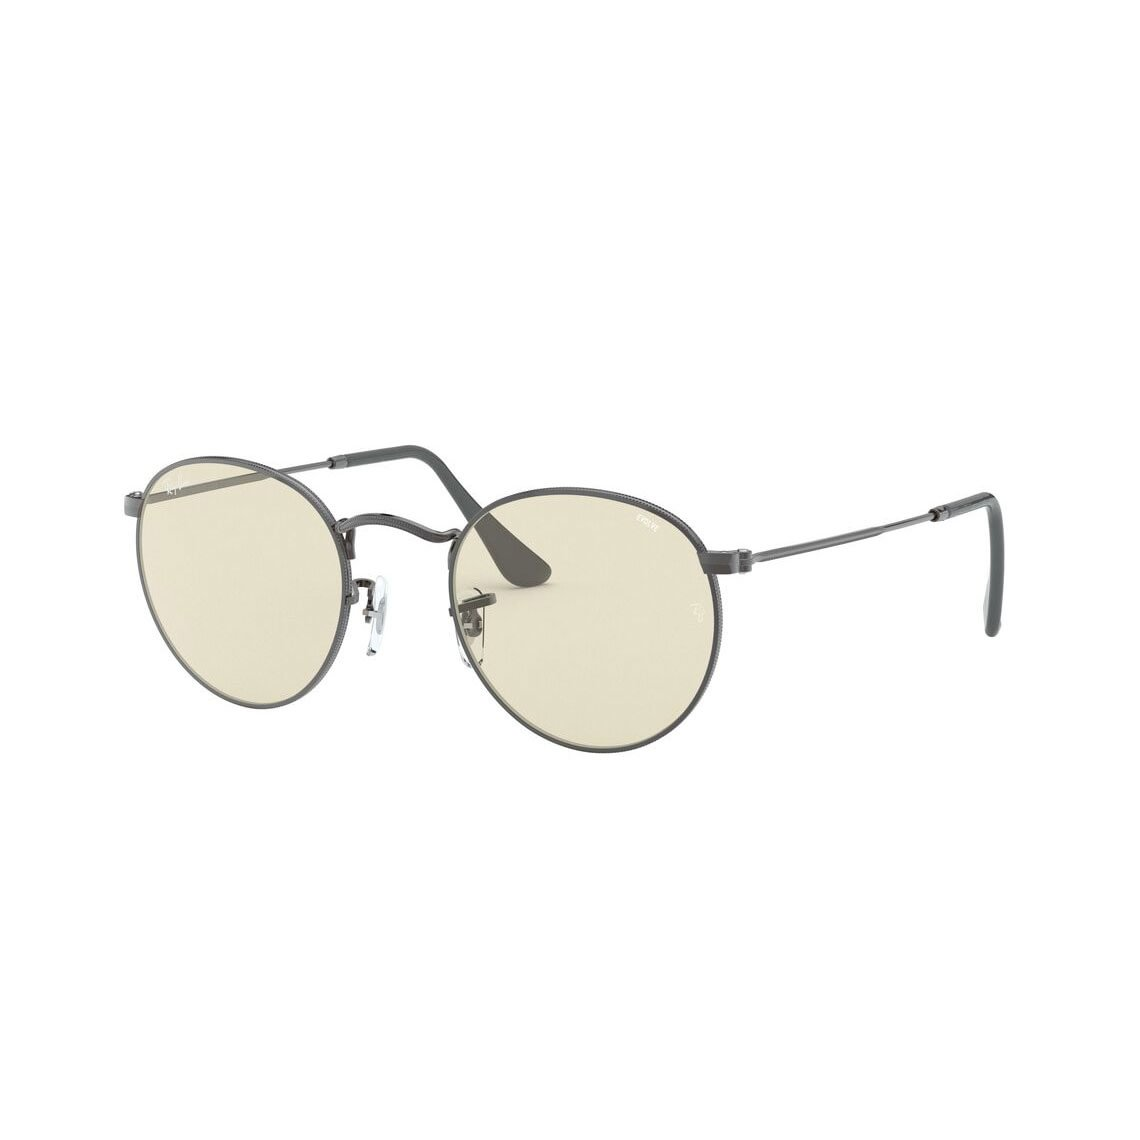 Ray-Ban Round metal RB3447 Solid Evolve 004/T2 5321